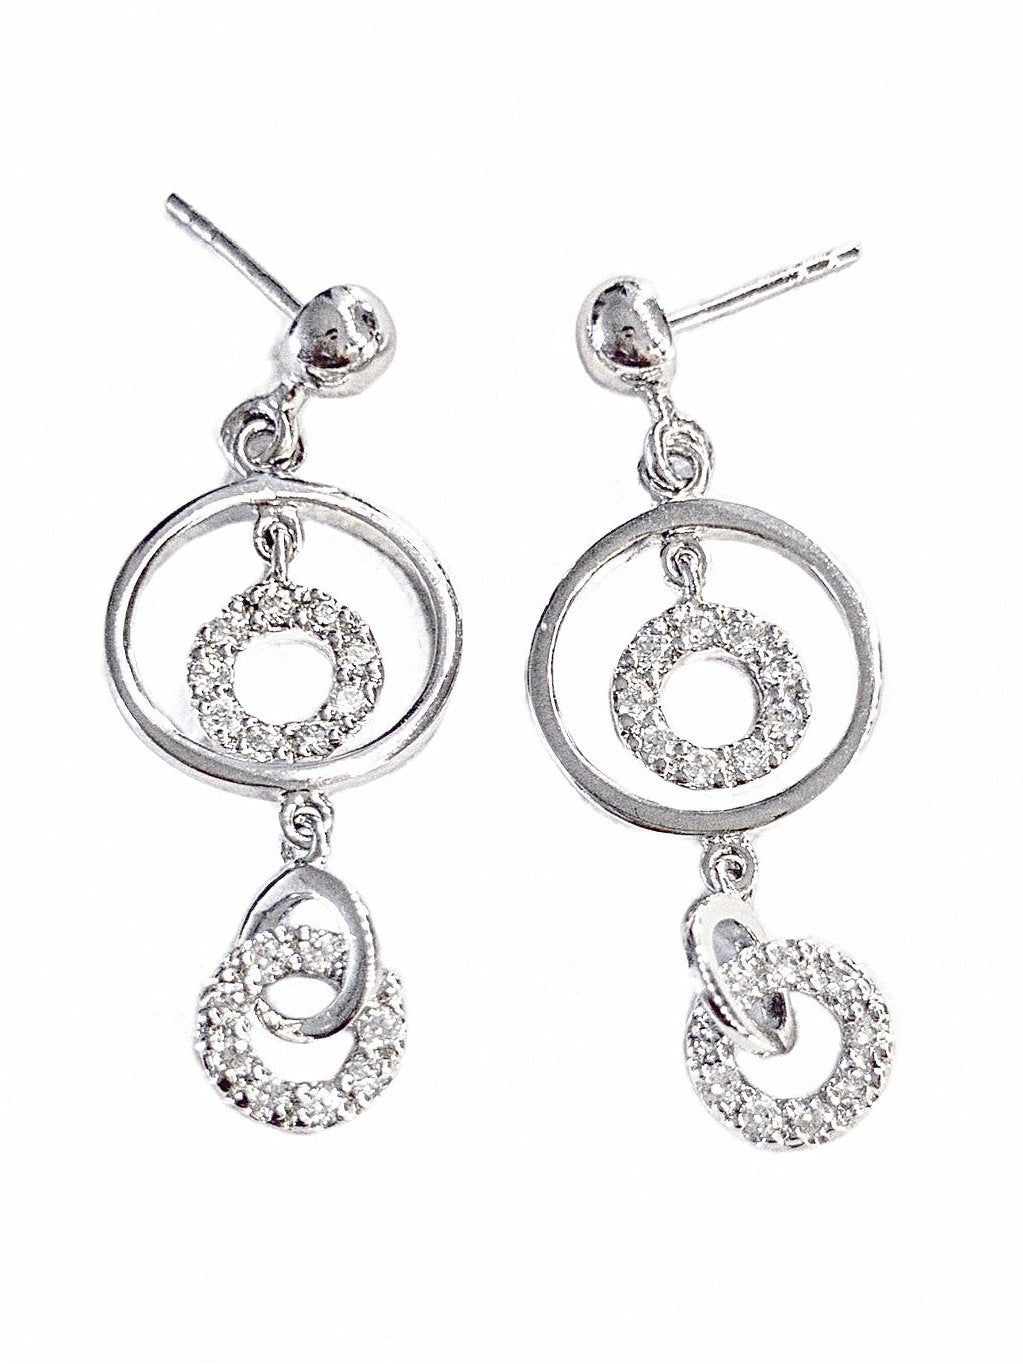 CIRCLE IN CIRCLE EARRINGS - SILVER